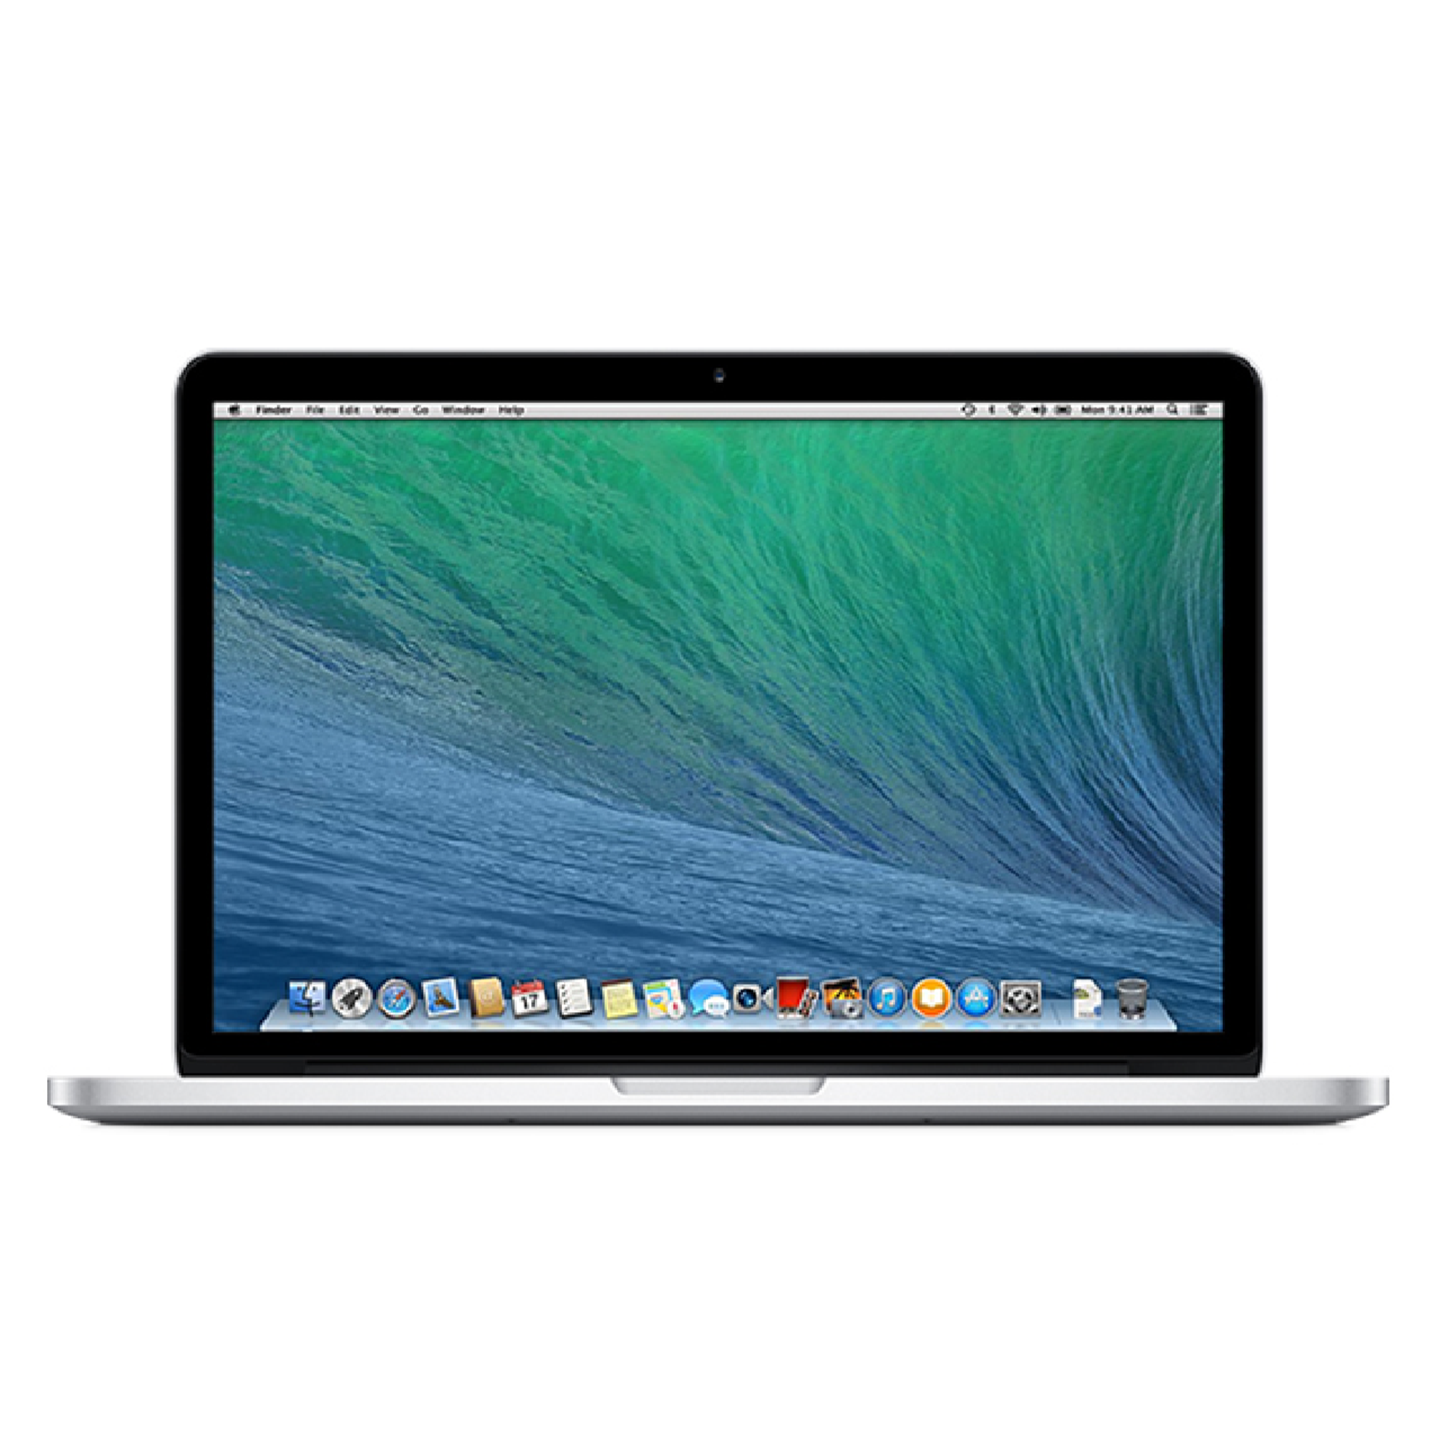 MacBook Pro (Retina, 13-inch, Late 2013)Core i7/16GB/SSD256GB E788